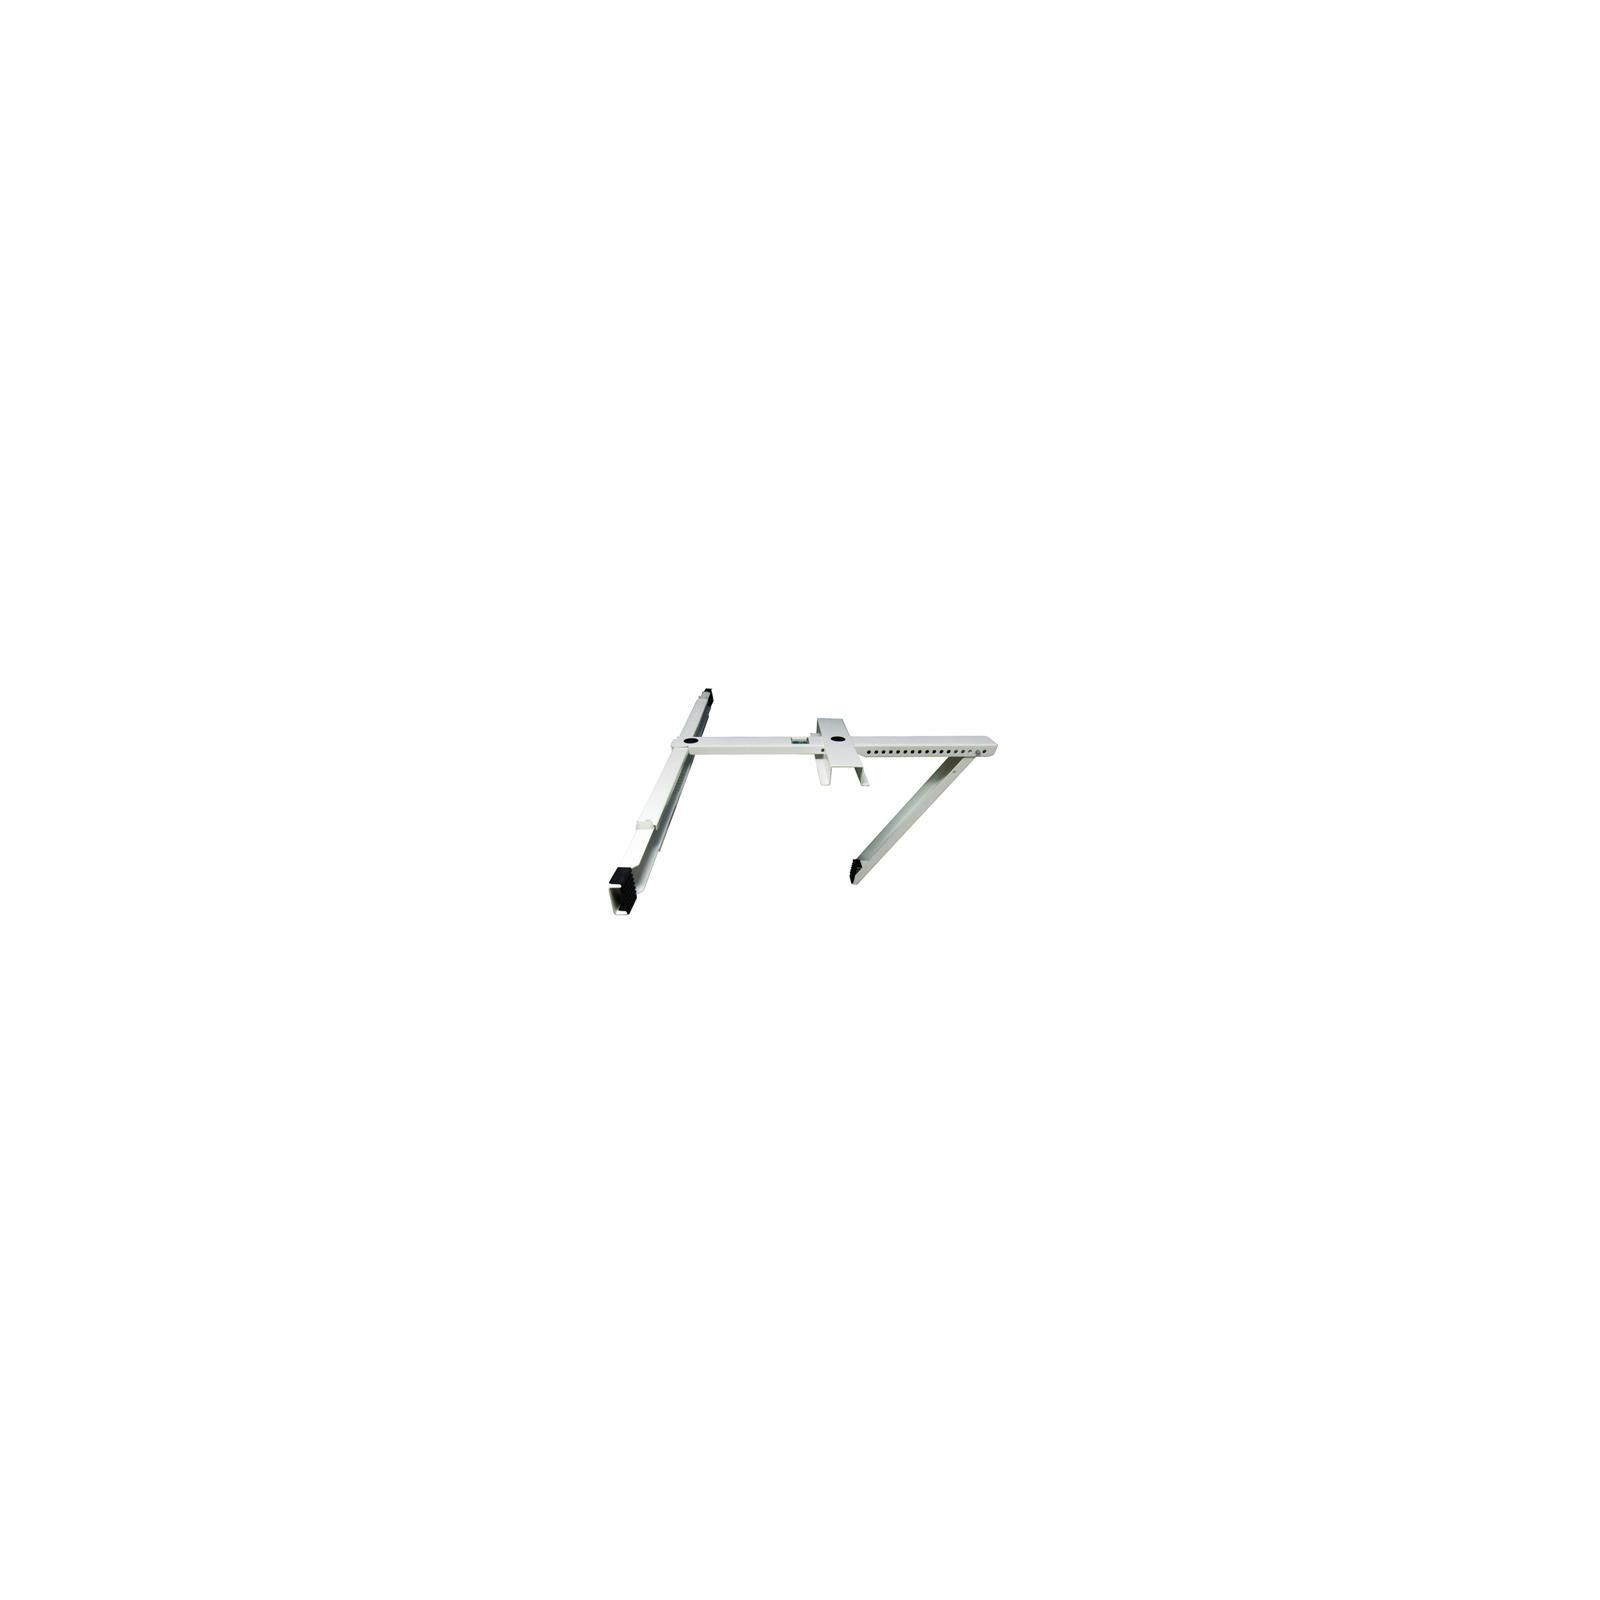 ACBNT1 Frost King Air Conditioner Support Bracket - Quantity 1